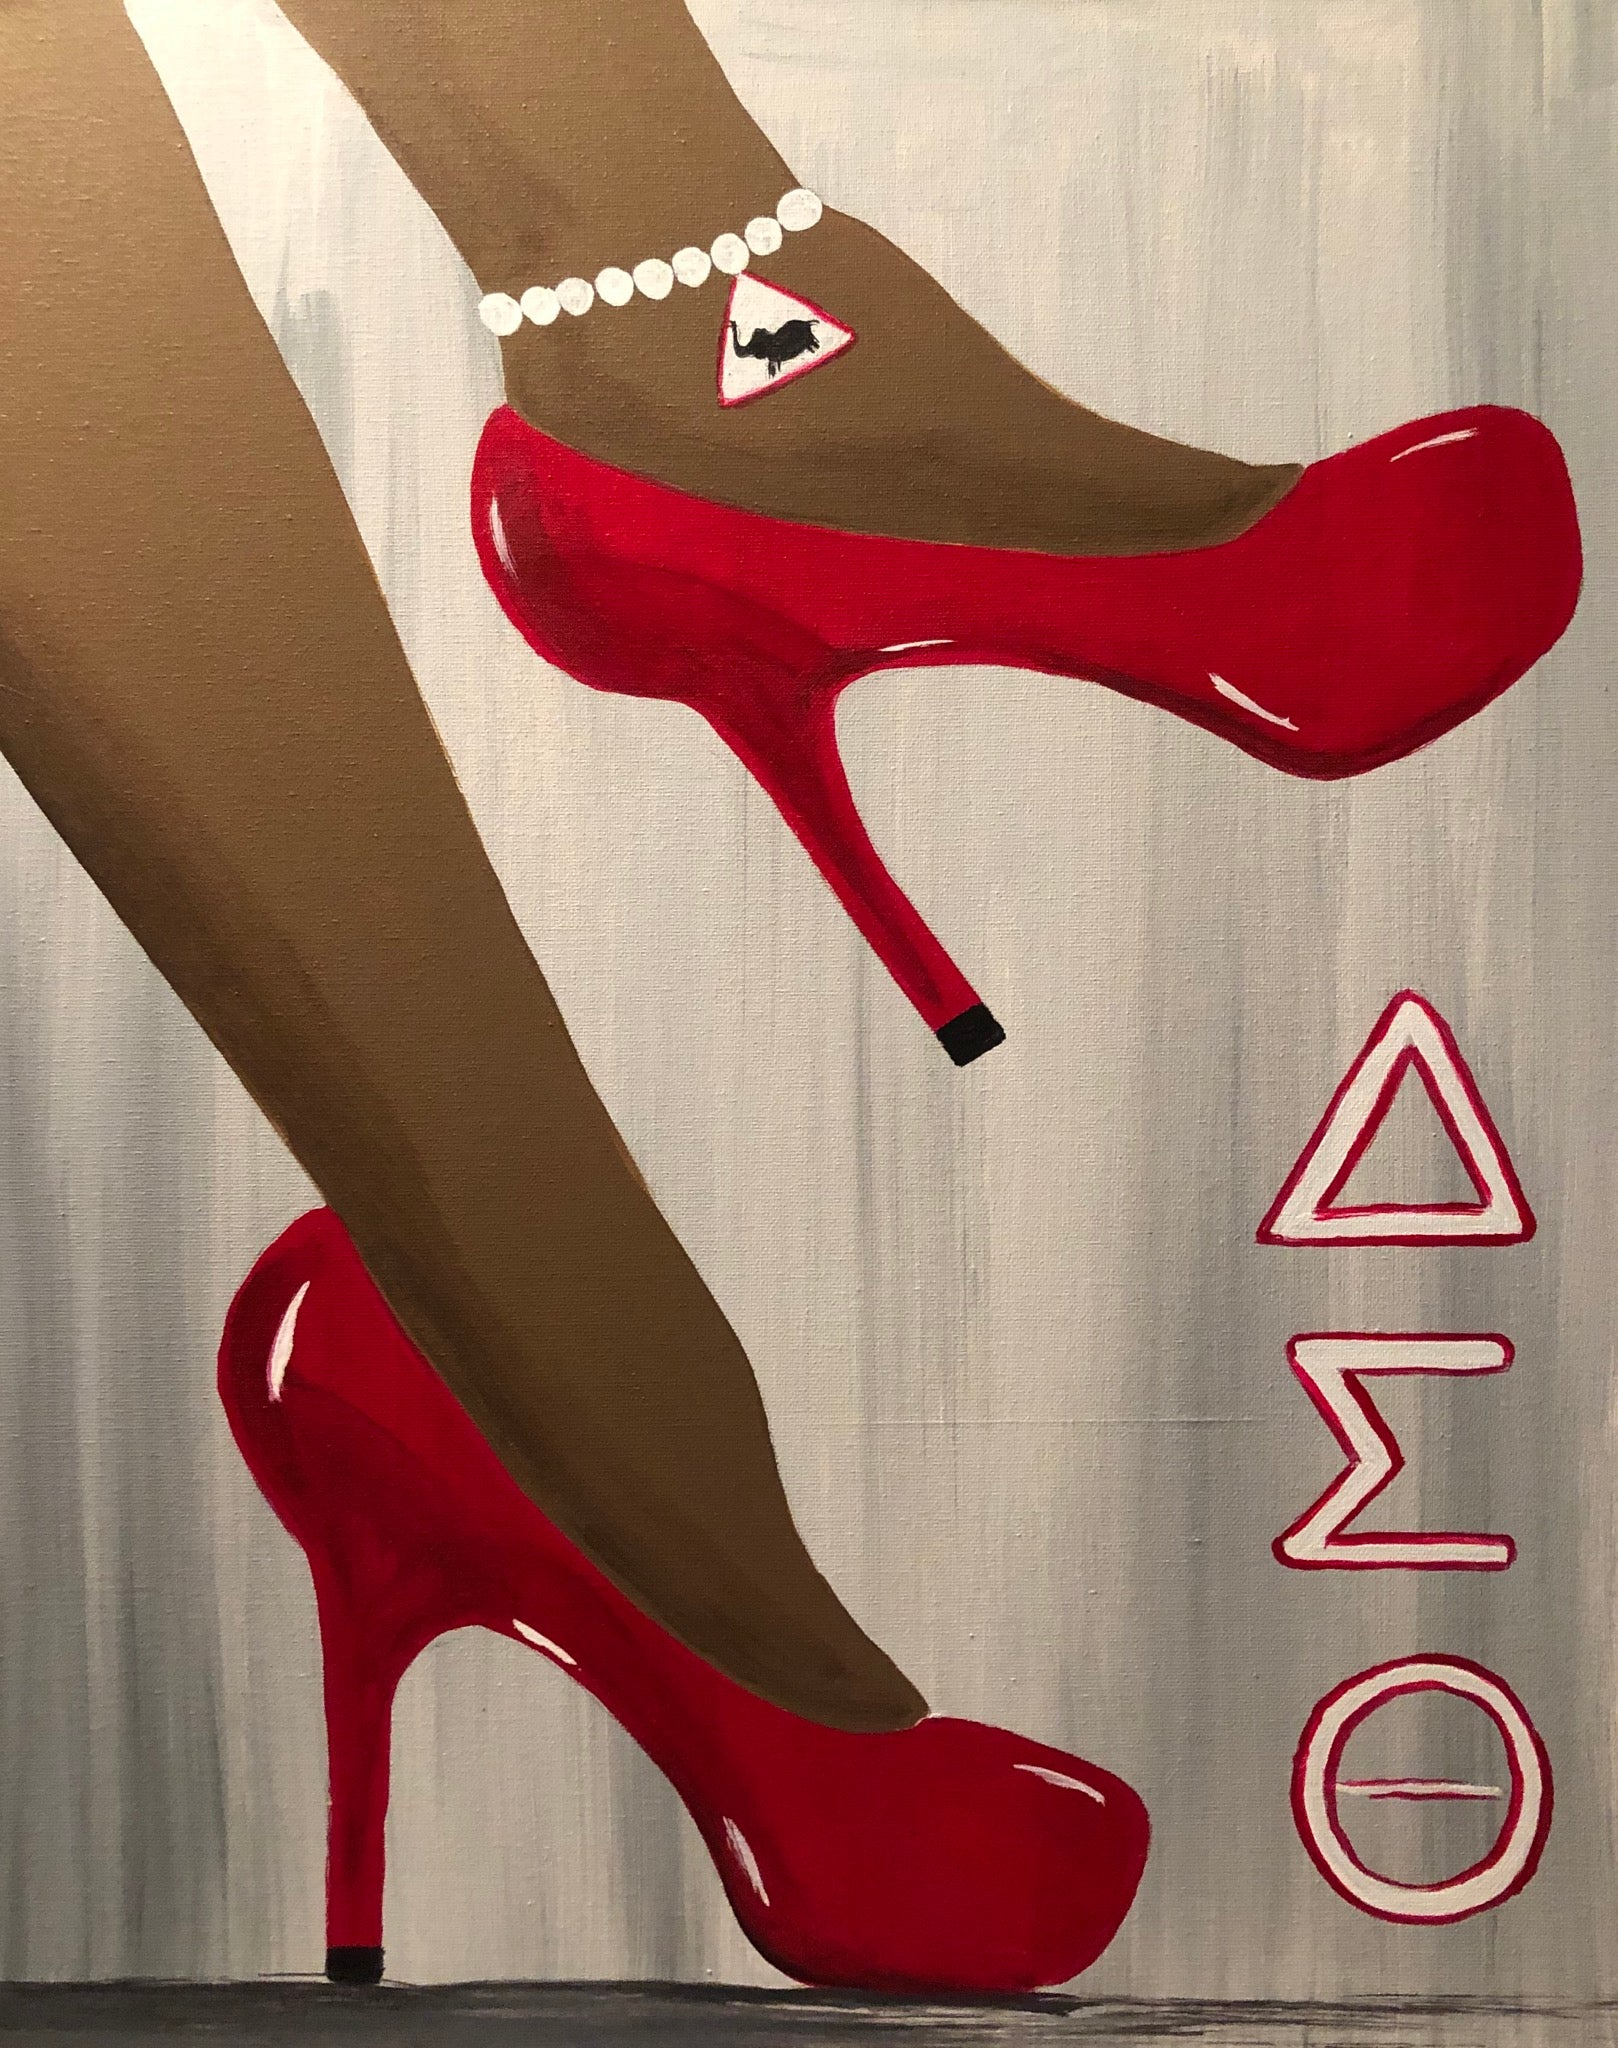 Sun, Jan 13, 2019 2-5pm Delta Sigma Theta TAC Founder's Day Party PRIVATE